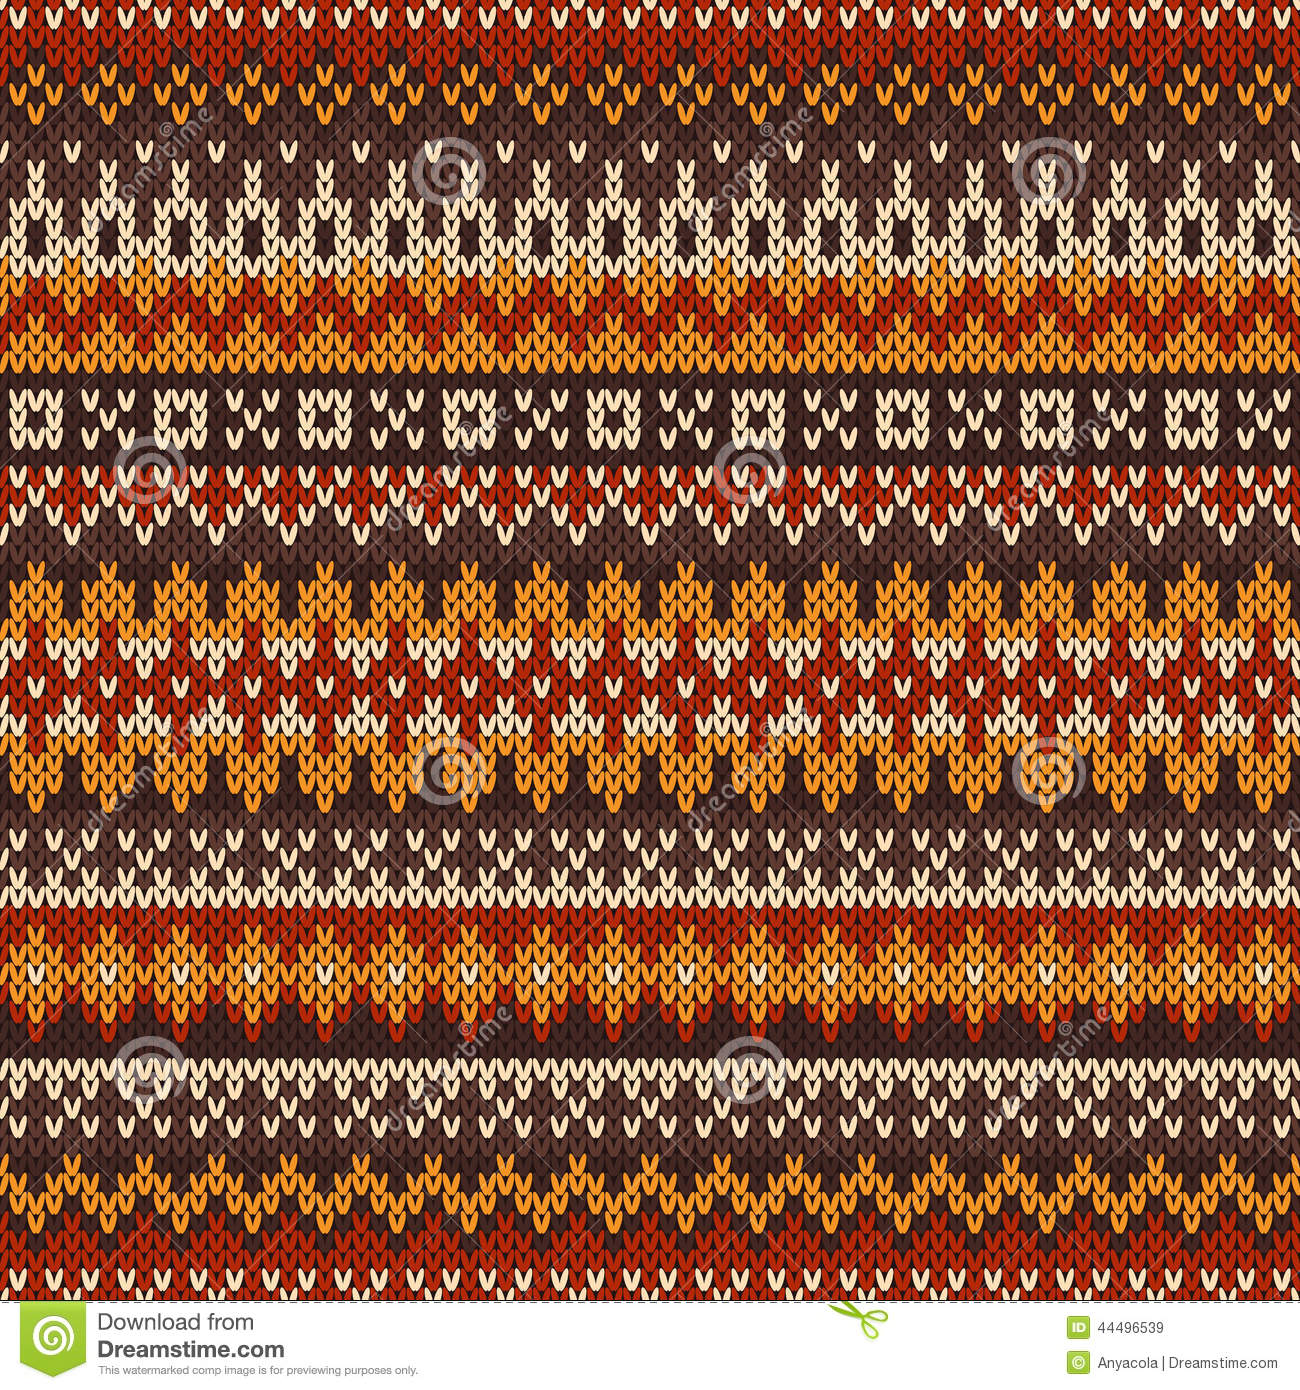 Free Baby Knitting Patterns For Blankets : Knitted Seamless Pattern In Fair Isle Style Stock Vector - Image: 44496539